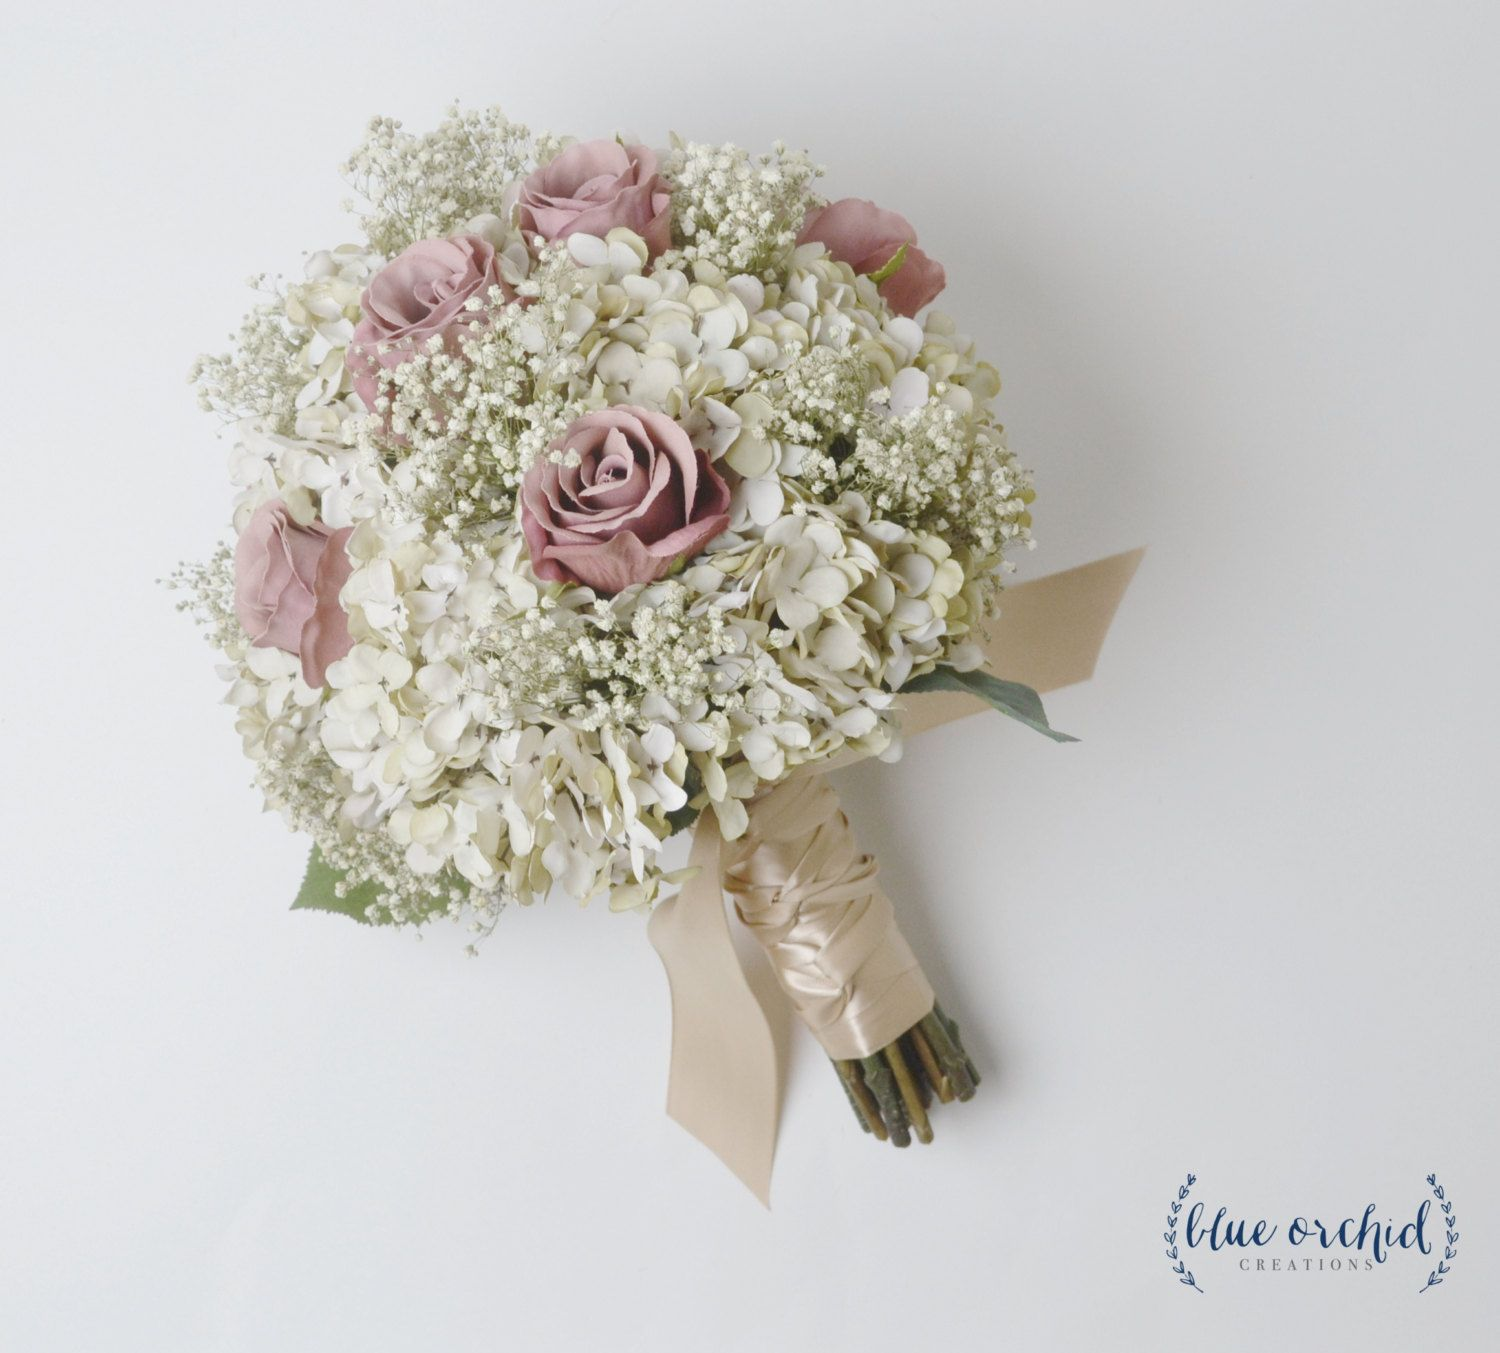 Bridal Bouquet Rustic Bouquet Dusty Rose Bouquet Baby S Breath Wedding Bouquet Silk F Flower Bouquet Wedding Romantic Wedding Flowers Vintage Rose Bouquet